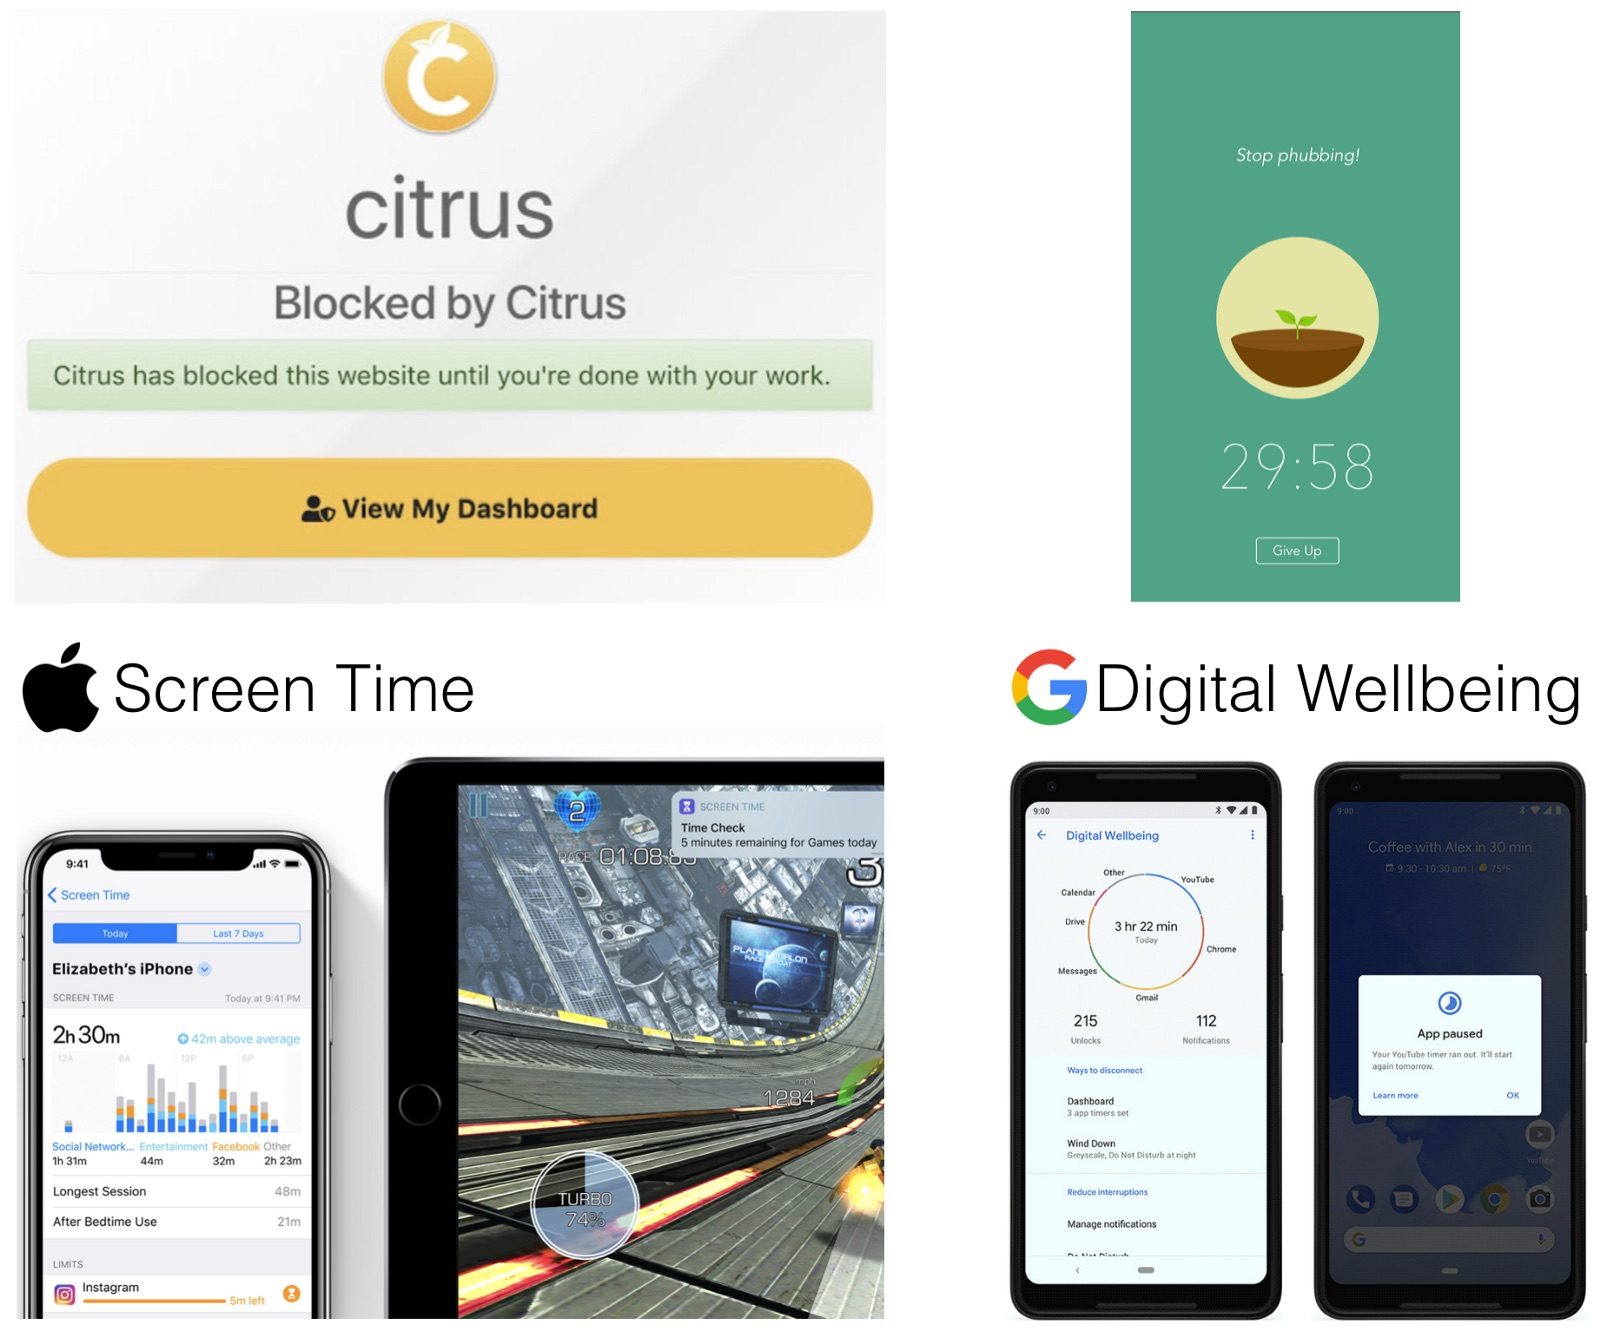 Many tools help support self-control over device use, using tricks such as blocking access to distracting websites (top left) or cutting down virtual trees if you use your smartphone during a focus session. Apple (bottom left) and Google (bottom right) recently begun to build similar functionality into their mobile operating systems.